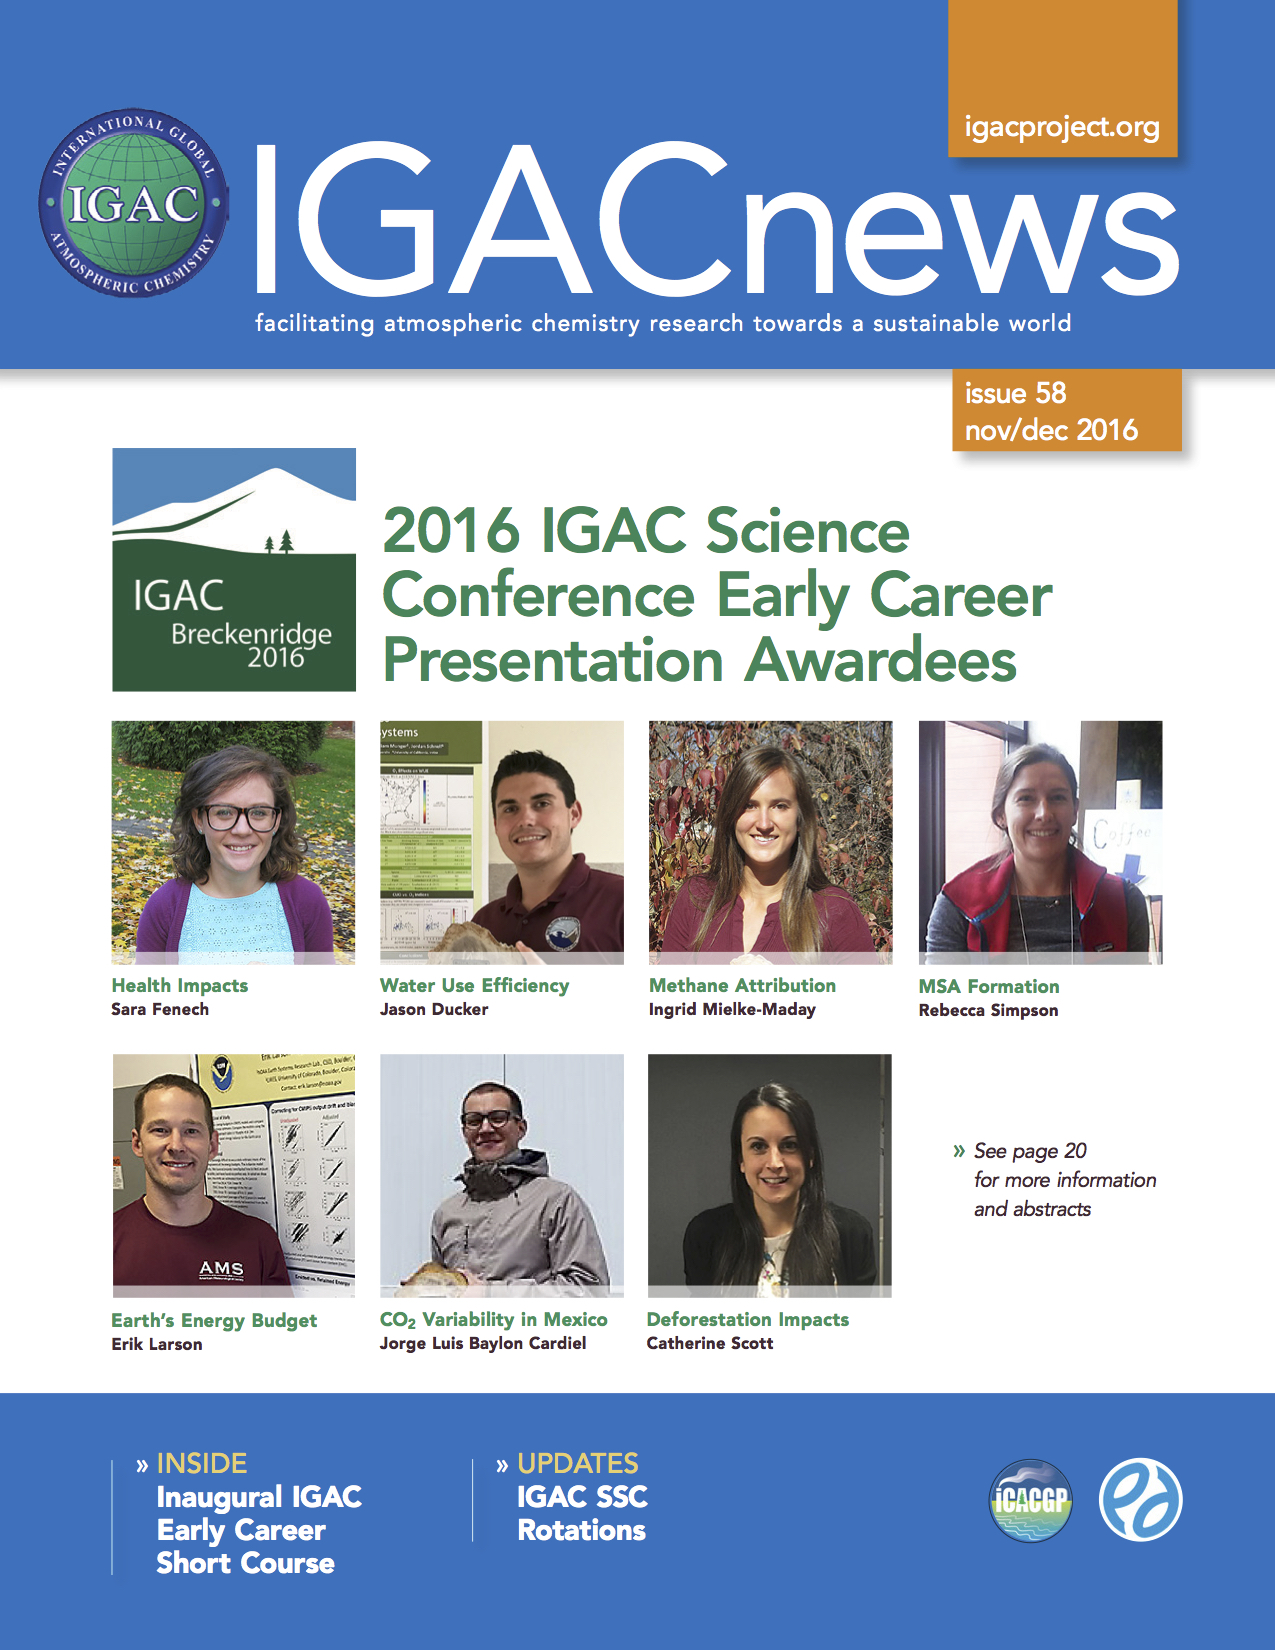 IGACnews Issue 58 Nov/Dec 2016